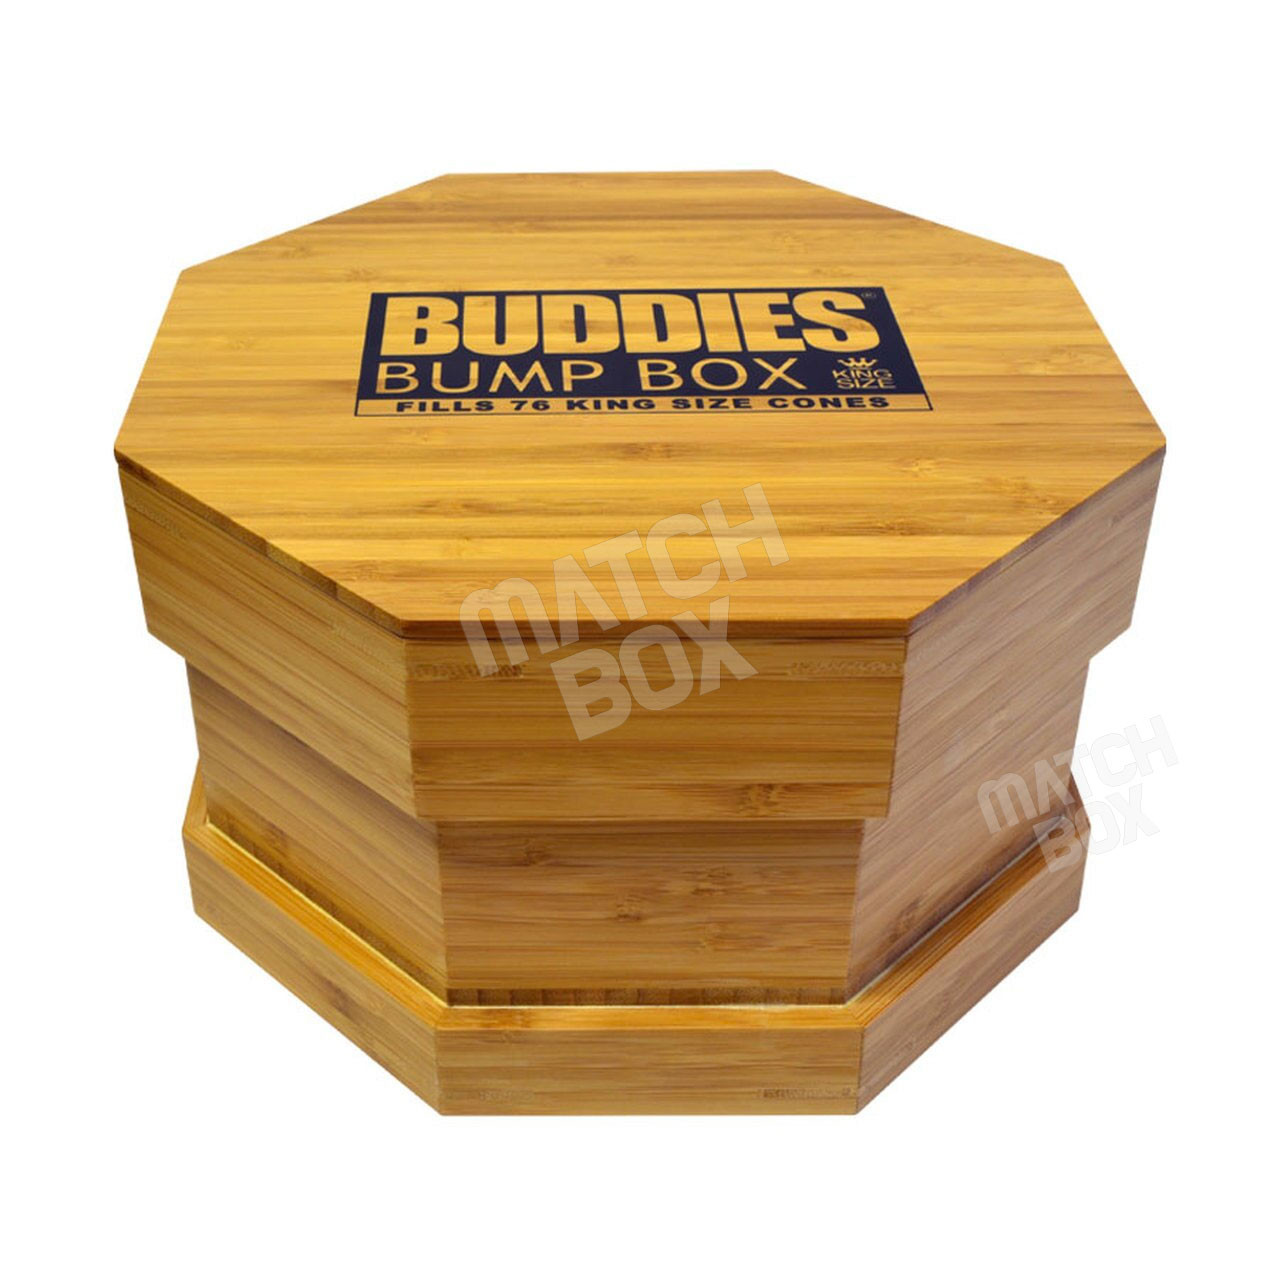 BUDDIES WOOD BUMP BOX WITH LID